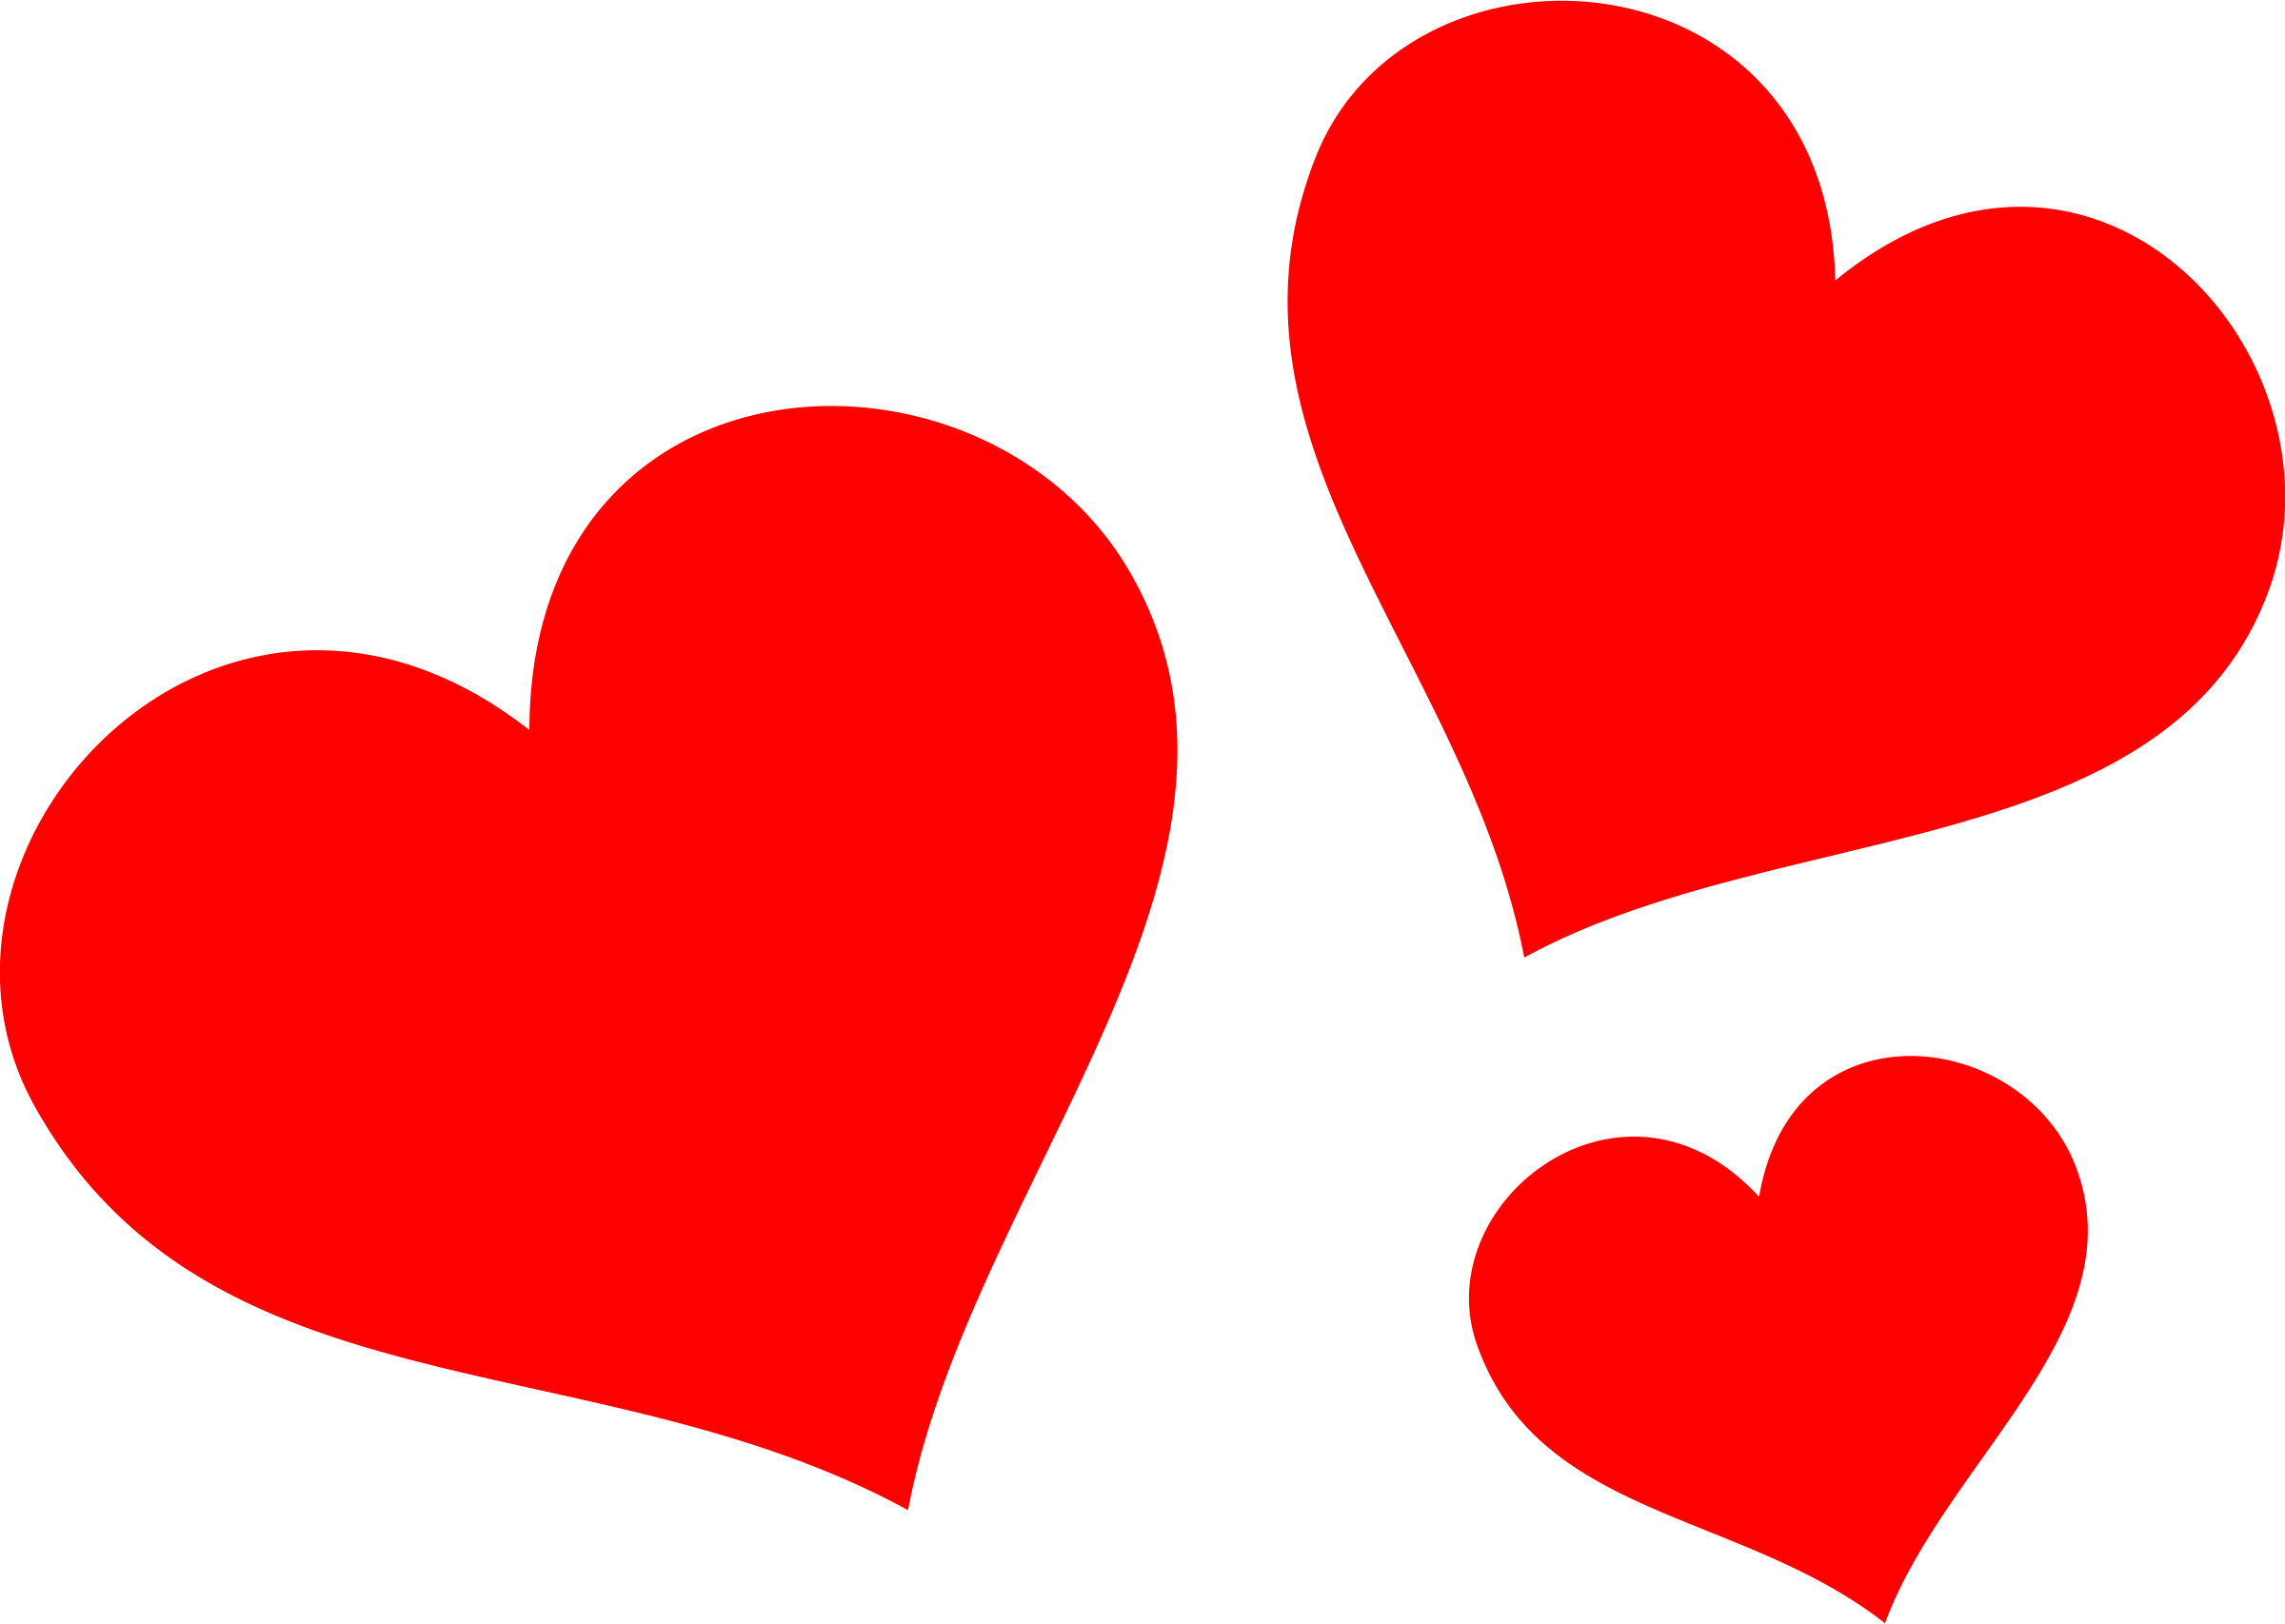 Clip art red heart. Hearts png